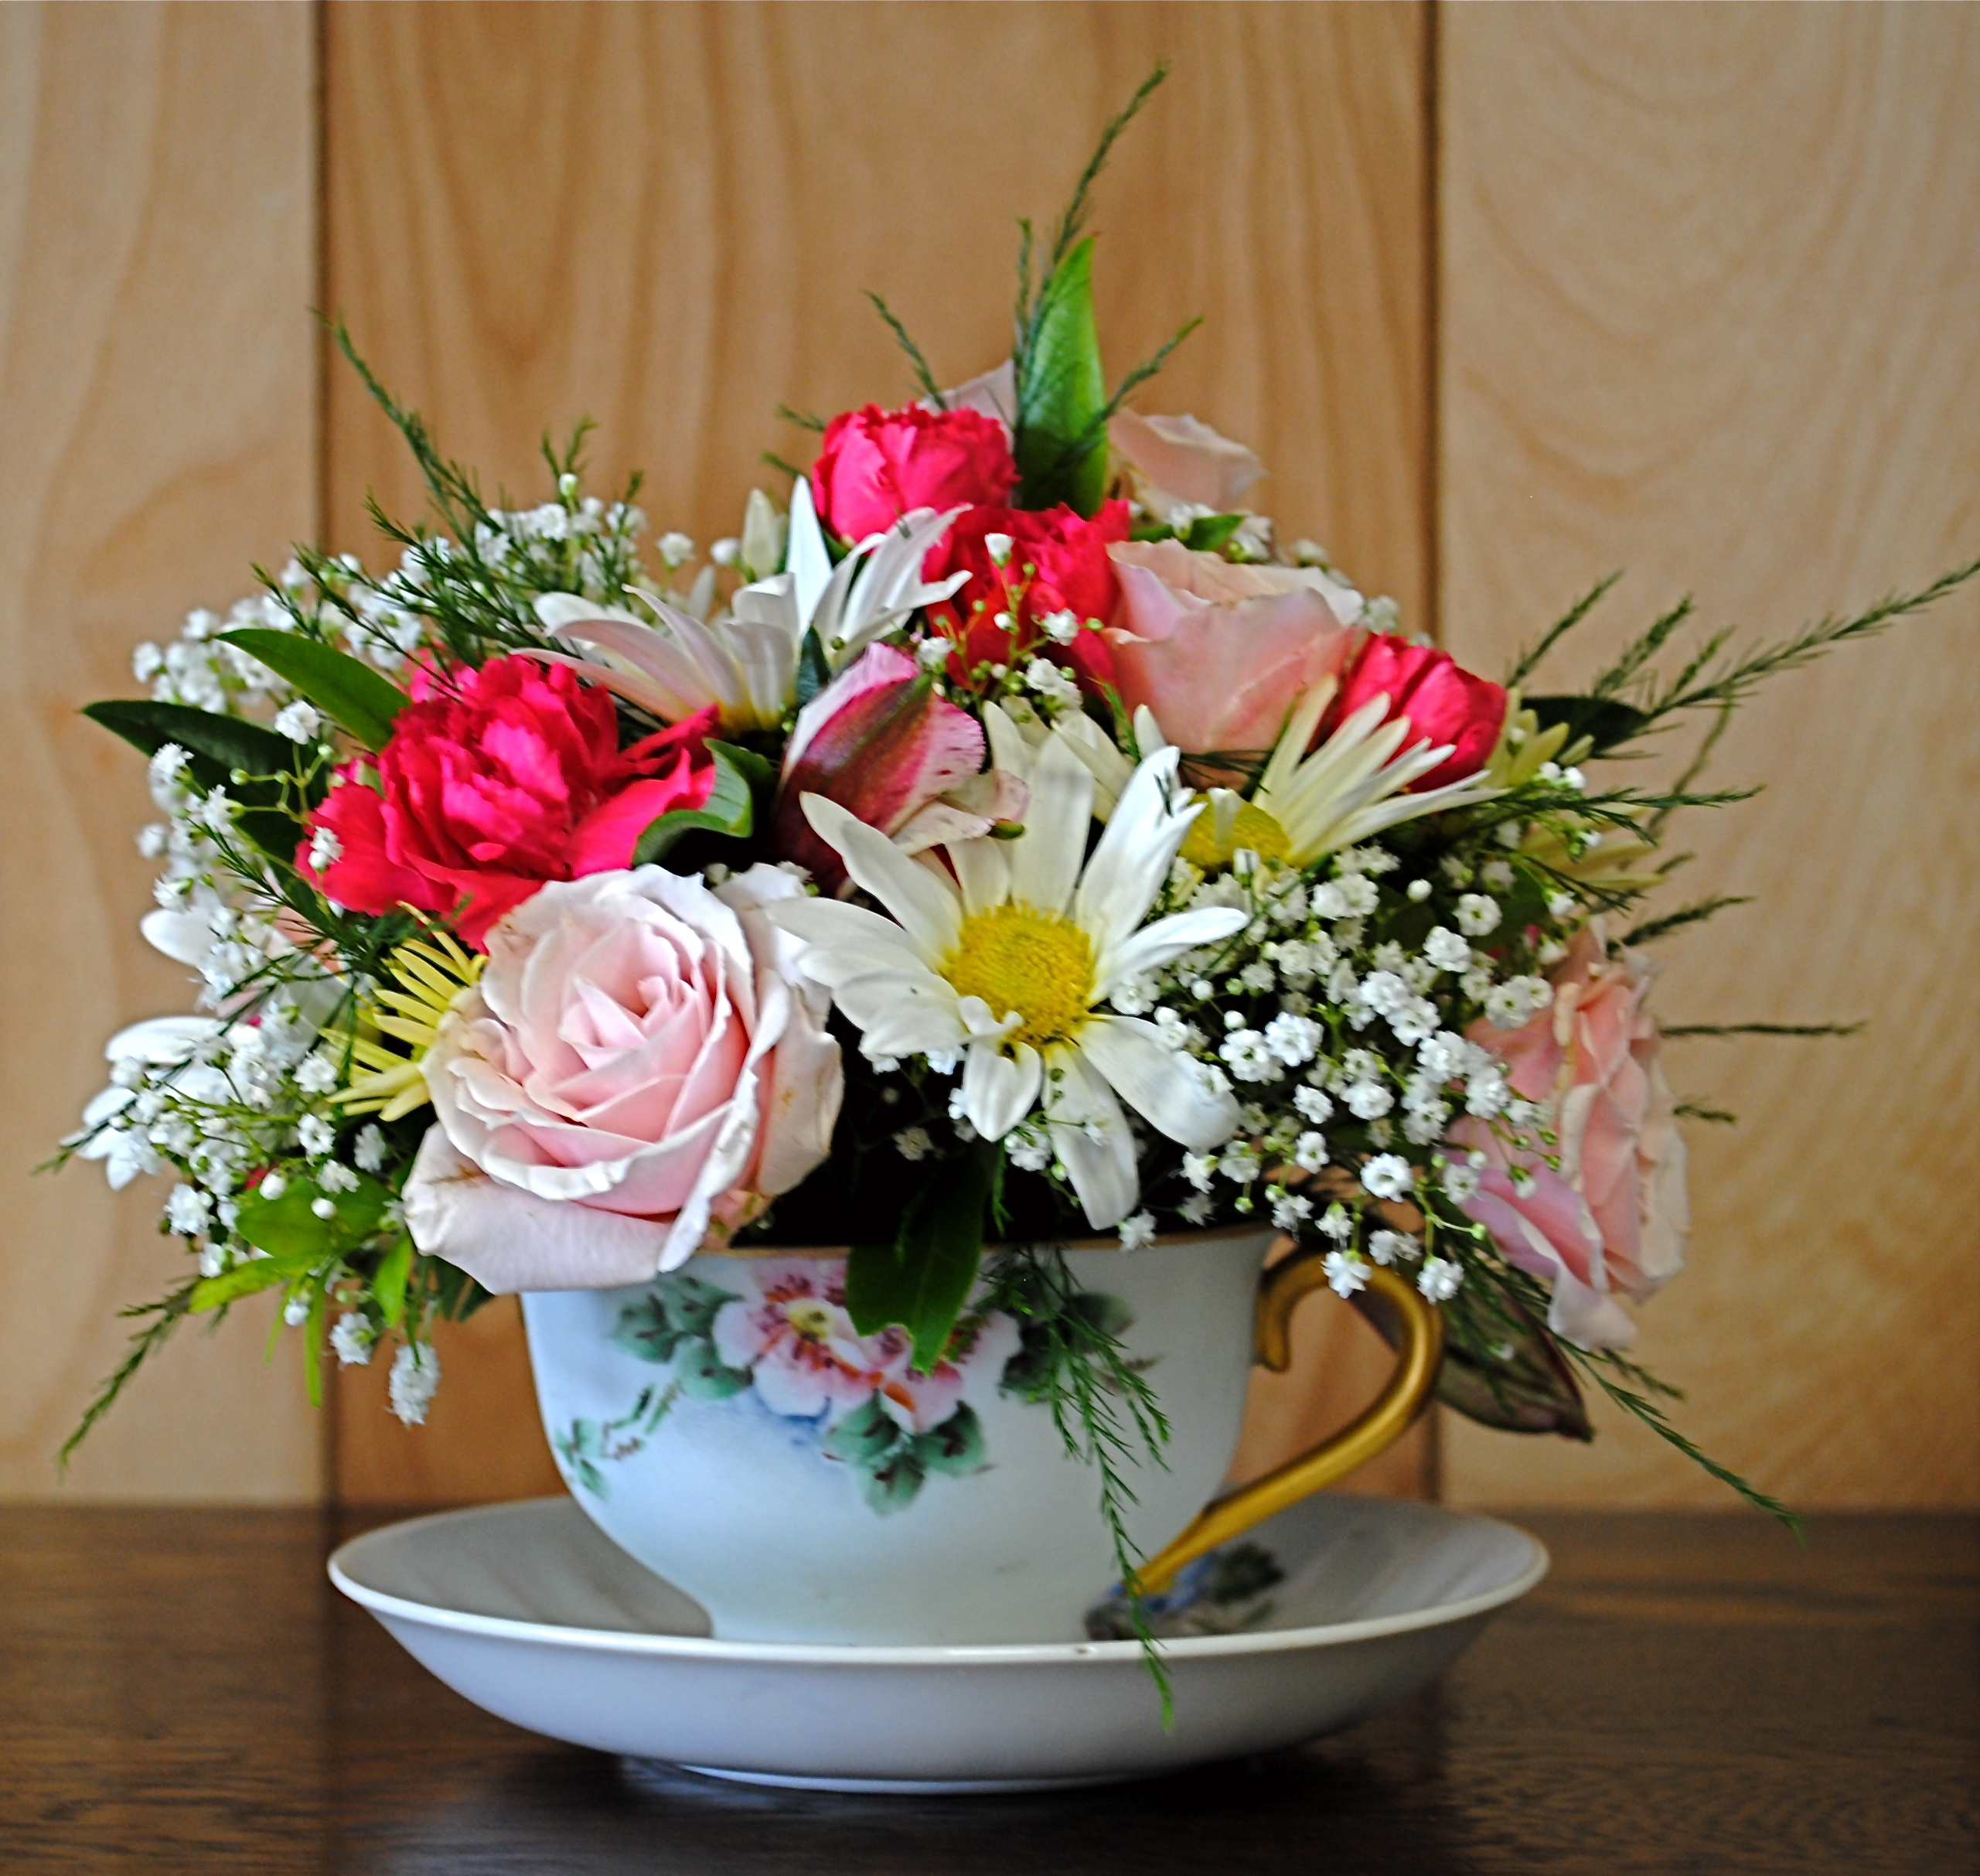 Teacup arrangements flowers for that special lady anytime of year teacup arrangements flowers for that special lady anytime of year izmirmasajfo